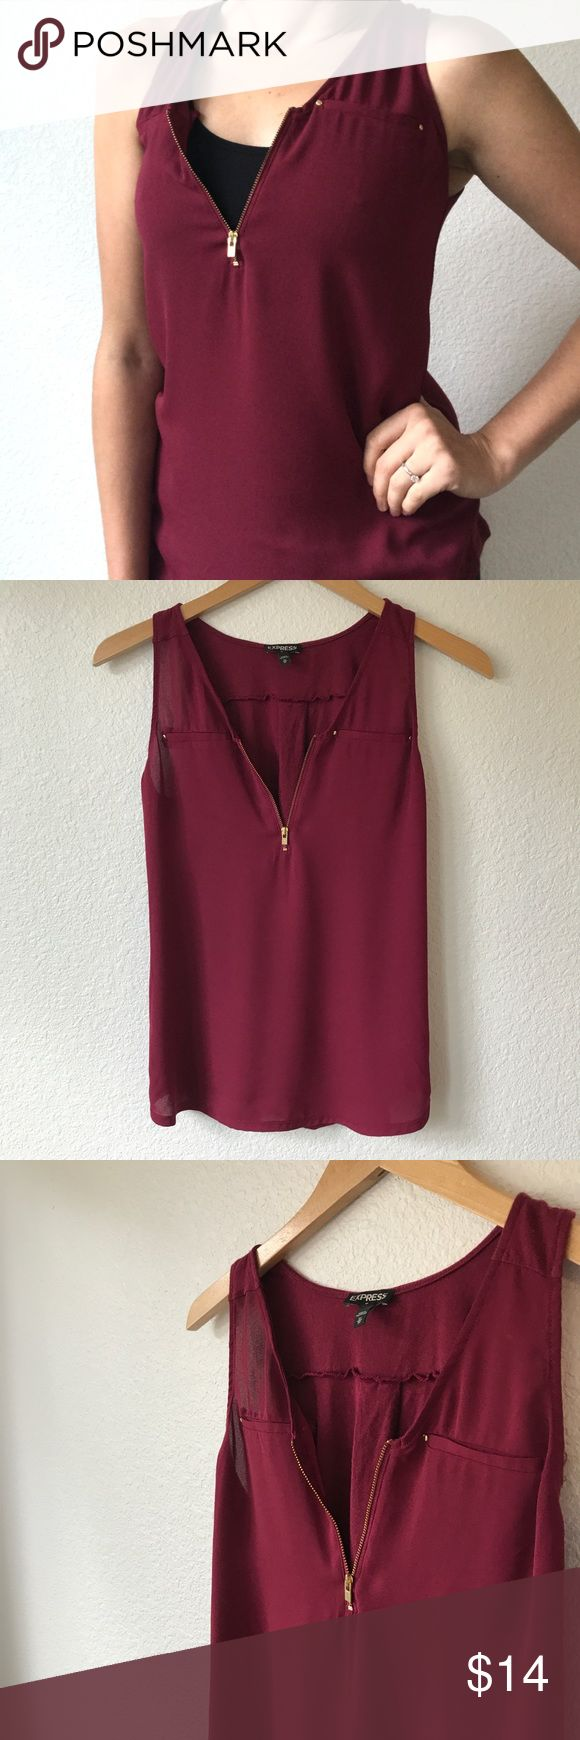 Express Gold Zip Maroon Red Tank XS Purchased this summer from the Express store. Features a maroon/red color and gold zip. Wore once and washed in cold water. Size XS. Express Tops Blouses